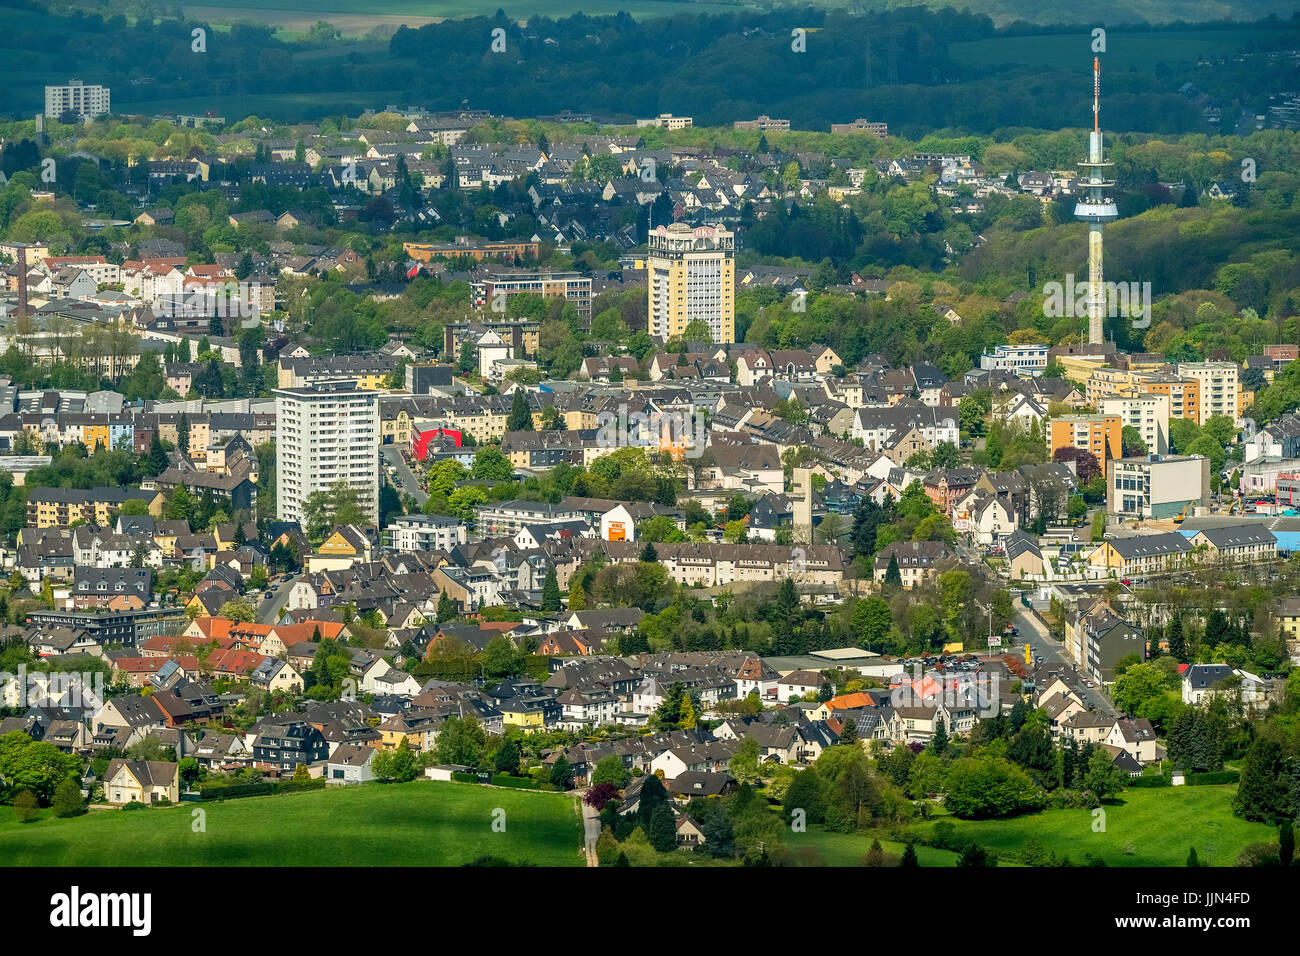 Cityscape with TV tower, Velbert, Ruhr area, North Rhine-Westphalia, Germany - Stock Image